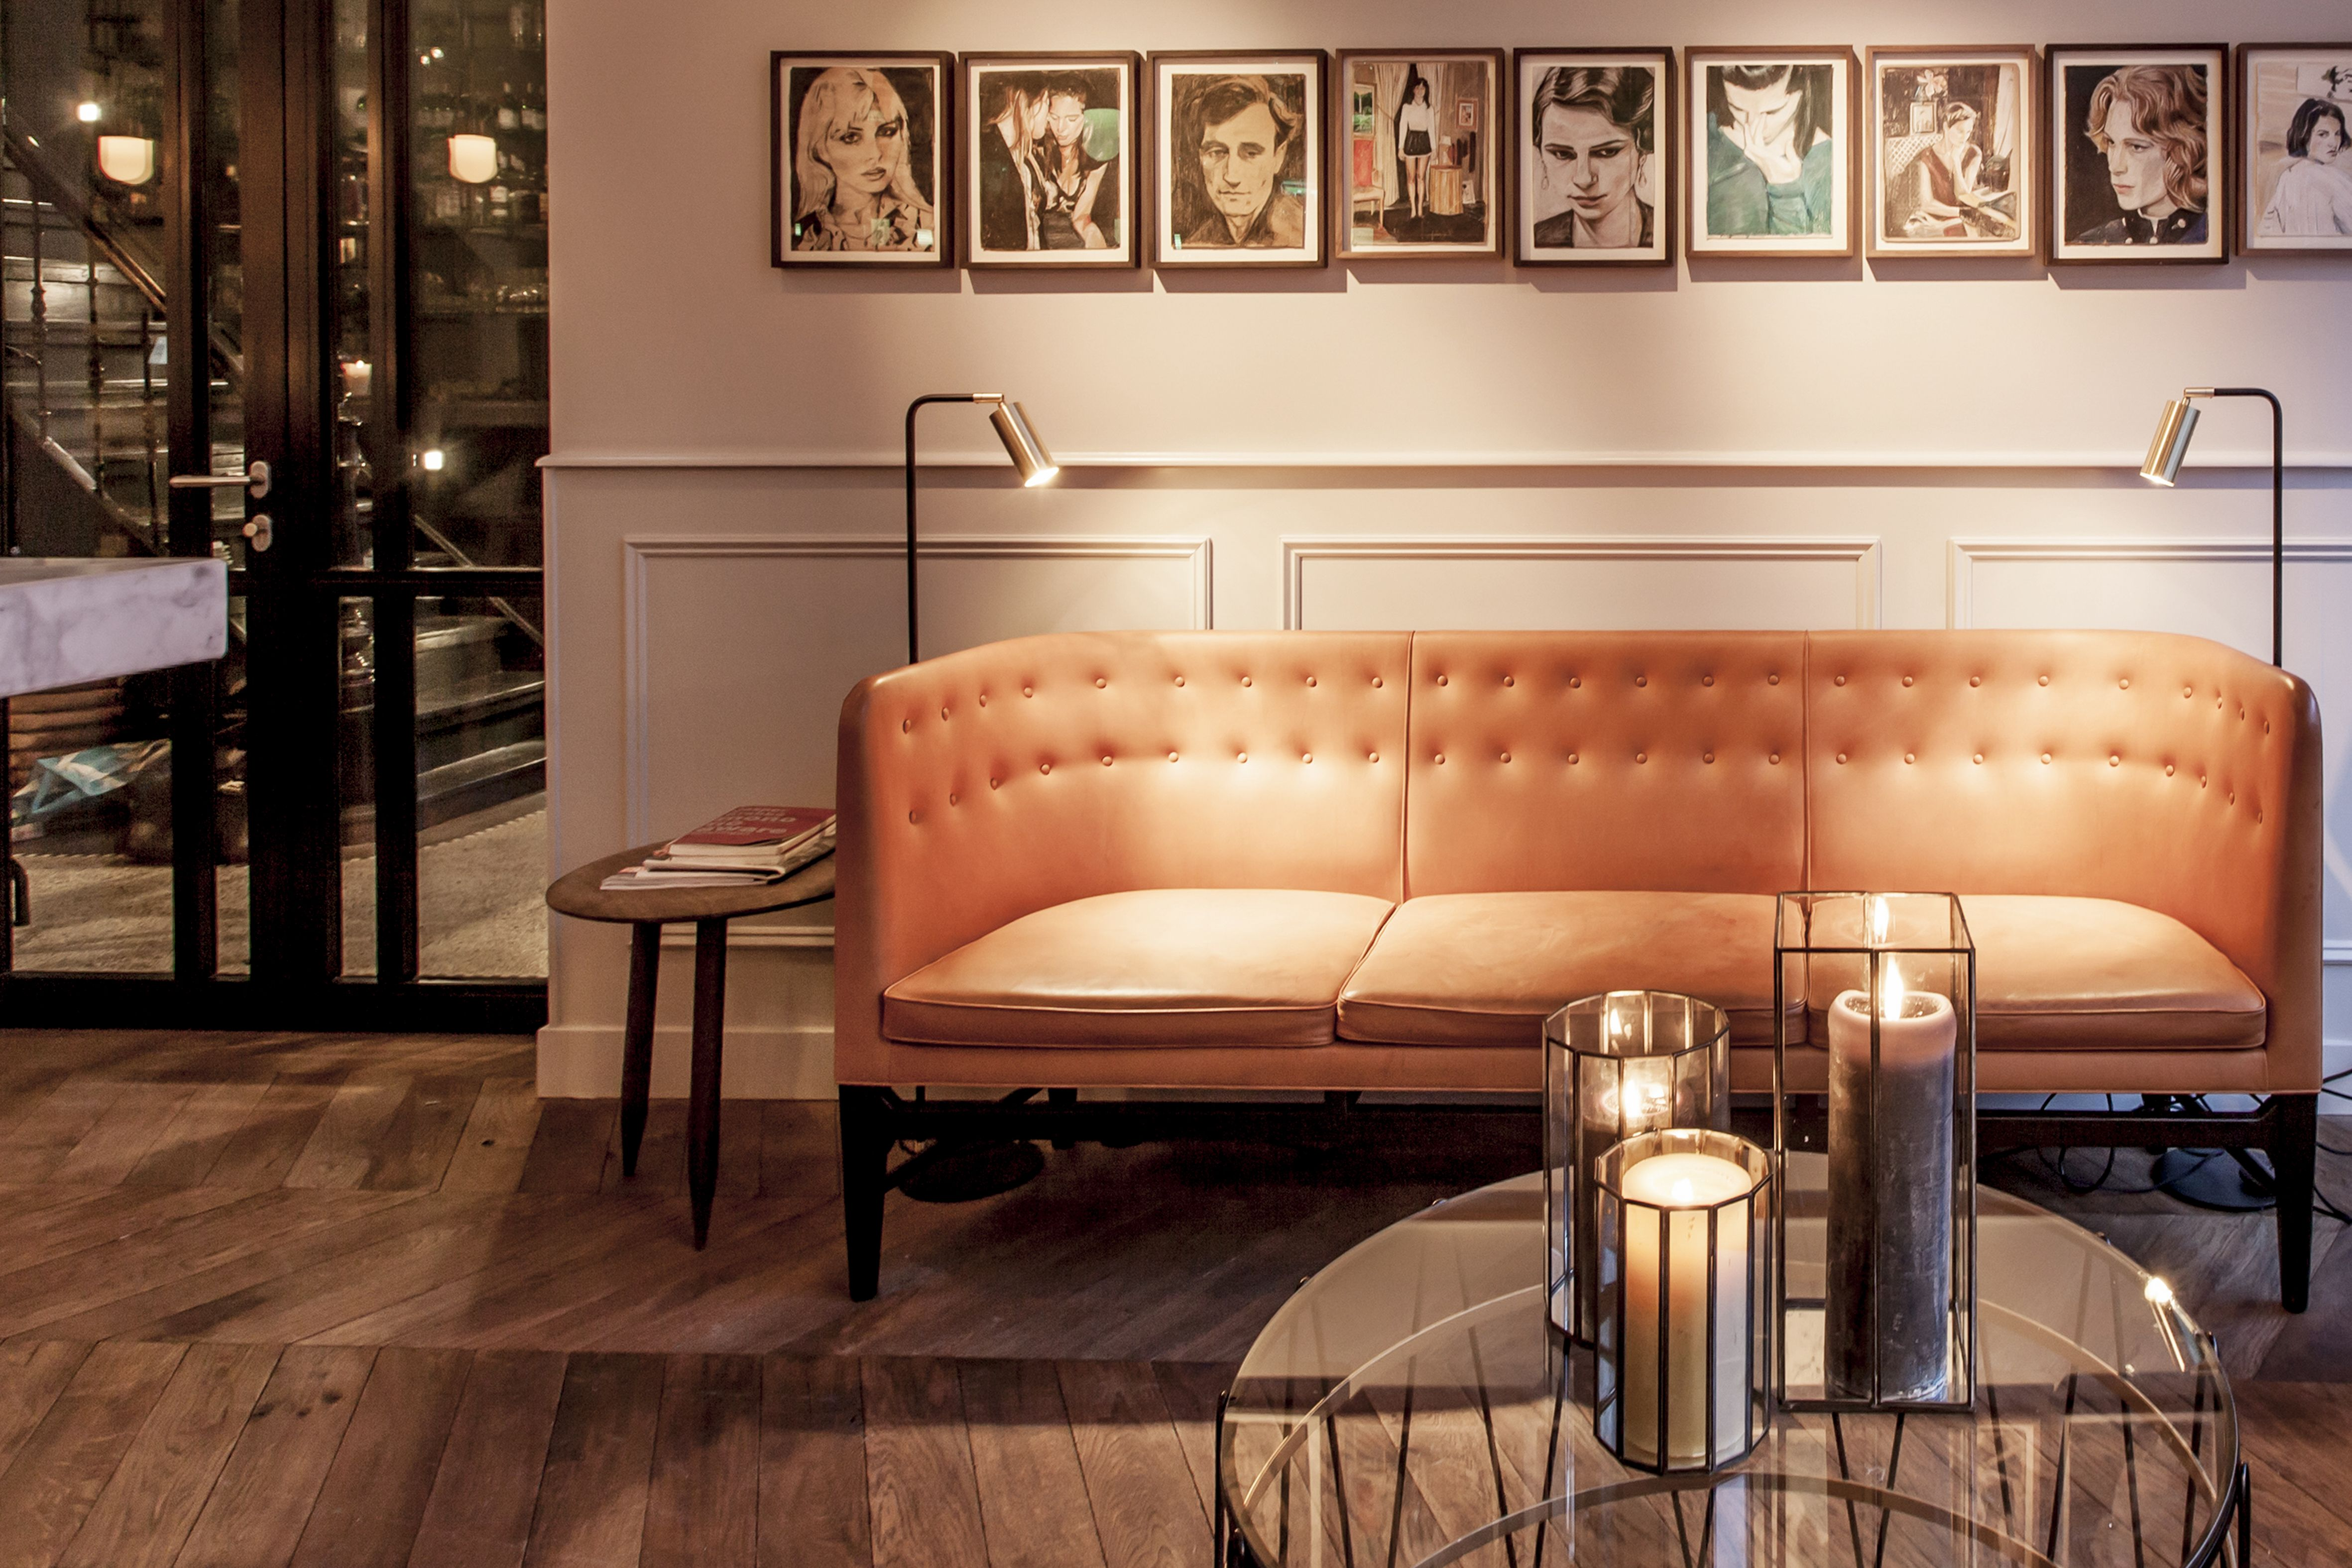 Anne claus interiors morgan mees pinterest for Design hotel niederlande